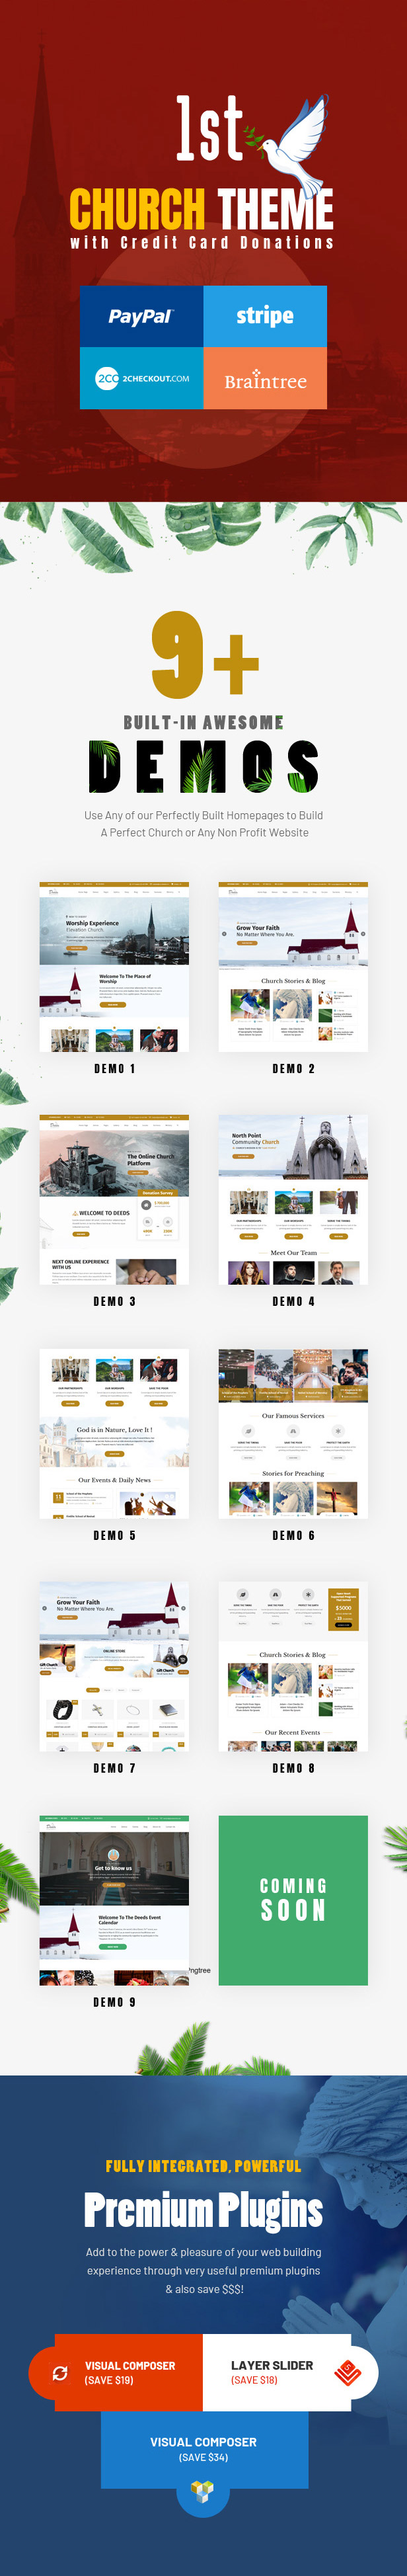 Deeds - Best Responsive Nonprofit Church WordPress Theme - 3